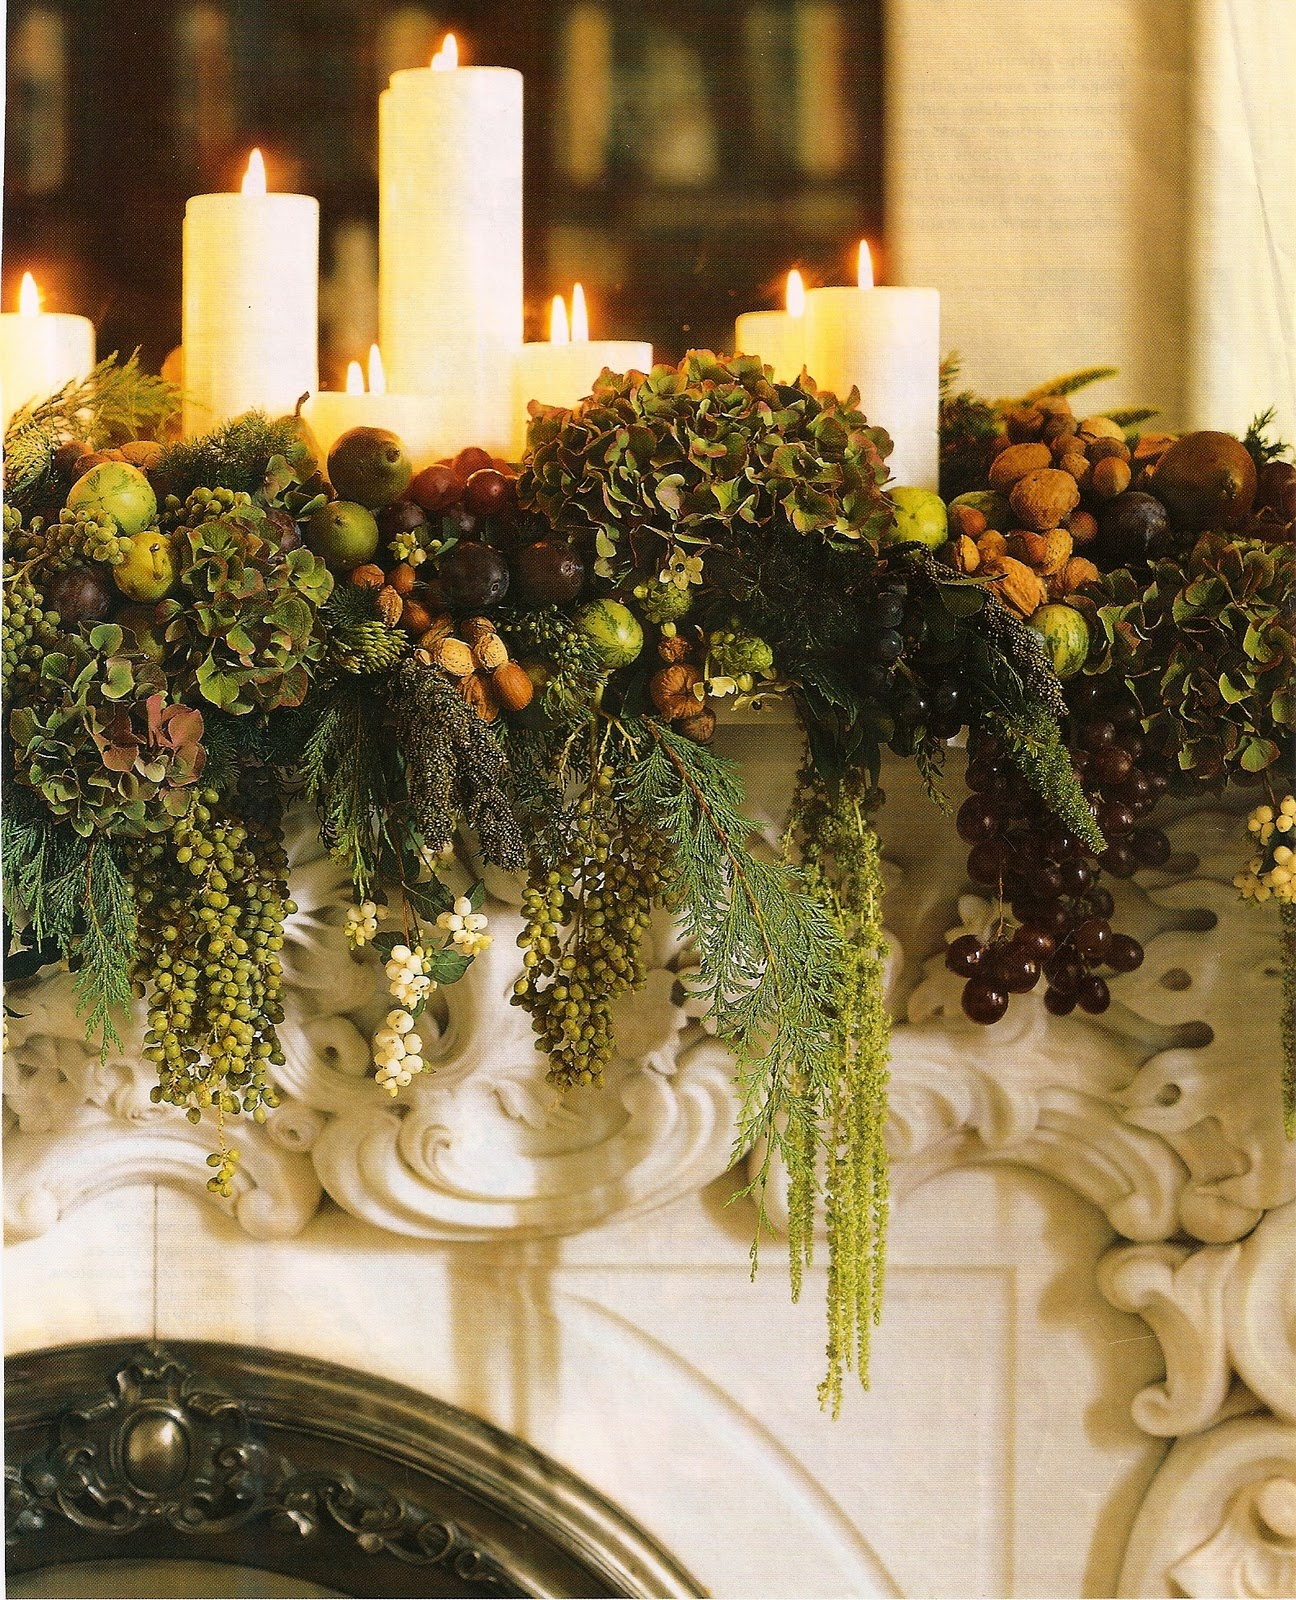 Xmas on pinterest wreaths evergreen and mantles for Christmas mantel decorations garland